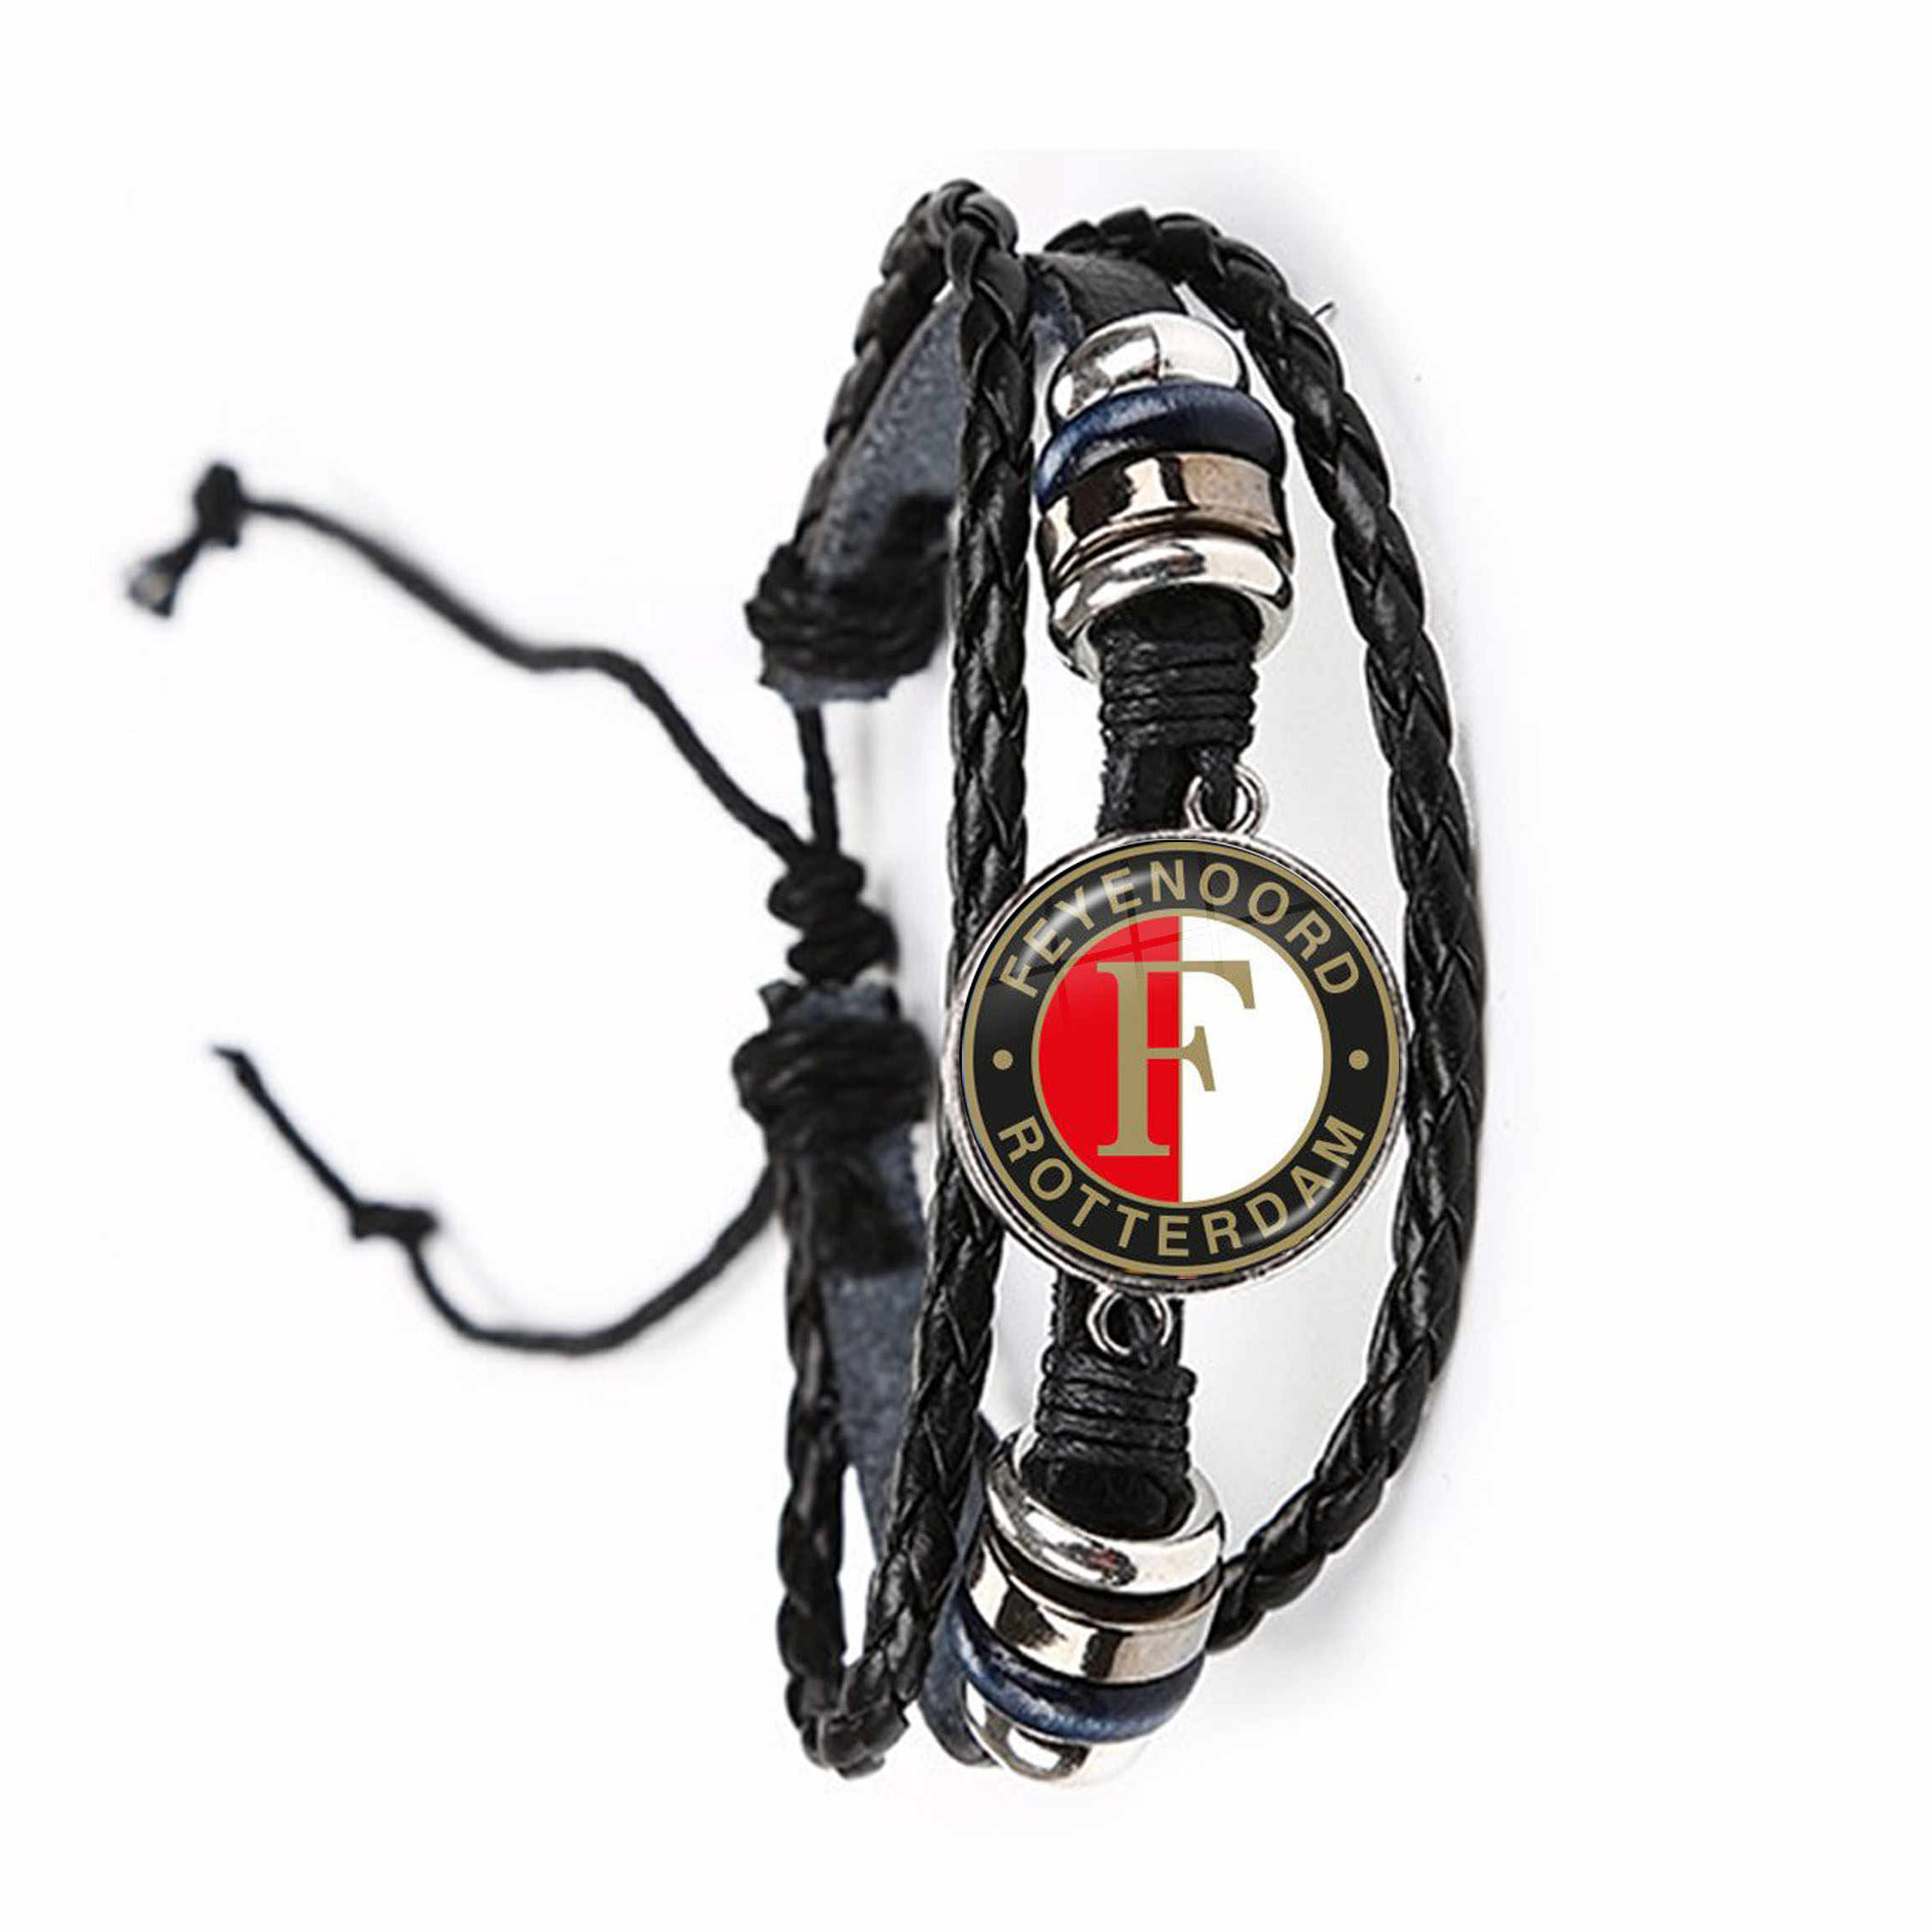 Feyenoord Rotterd Football Club Glass Cabochon Bracelet Football Leagues Logo Soccer Club Black Leather Bangle For Fans Gift